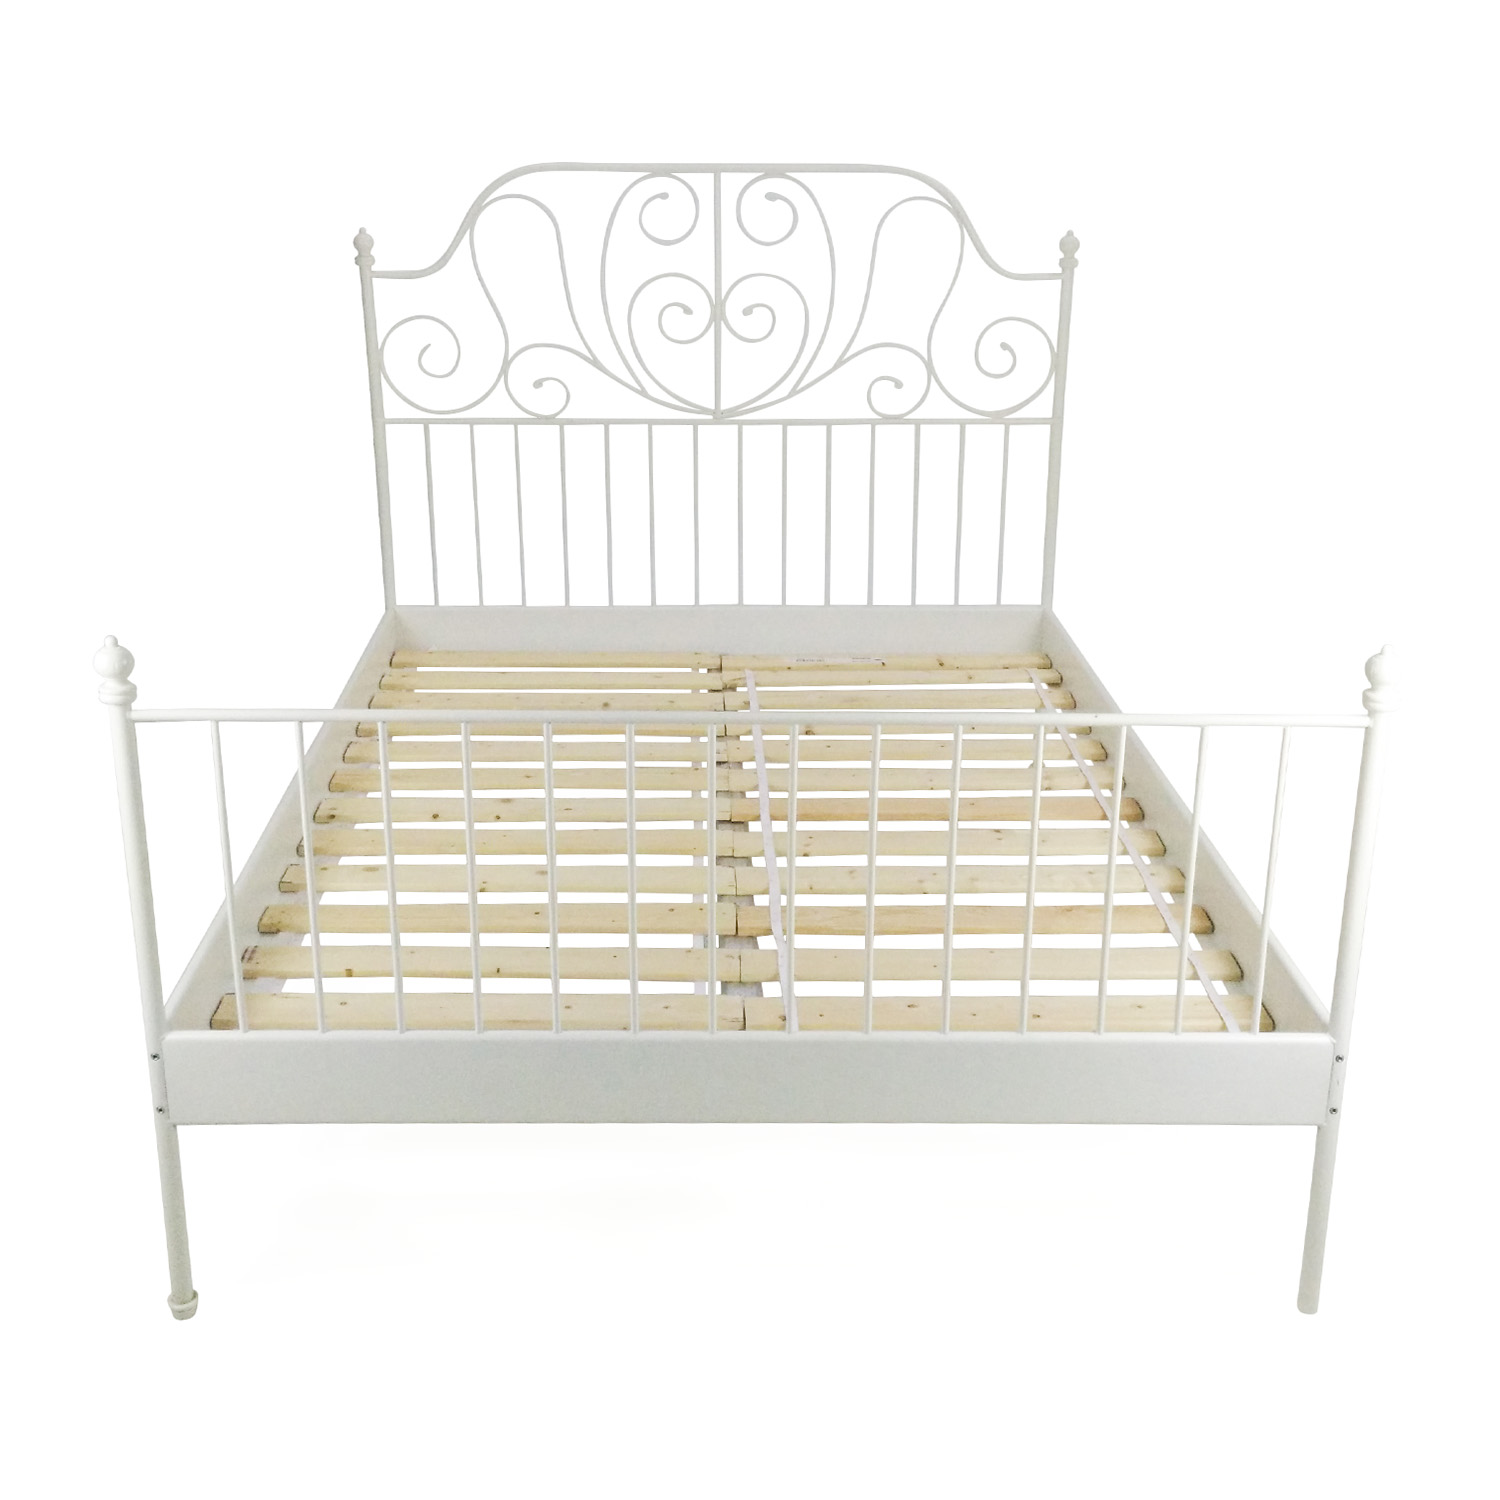 Ikea IKEA Queen Sized Iron Bed Frame on sale